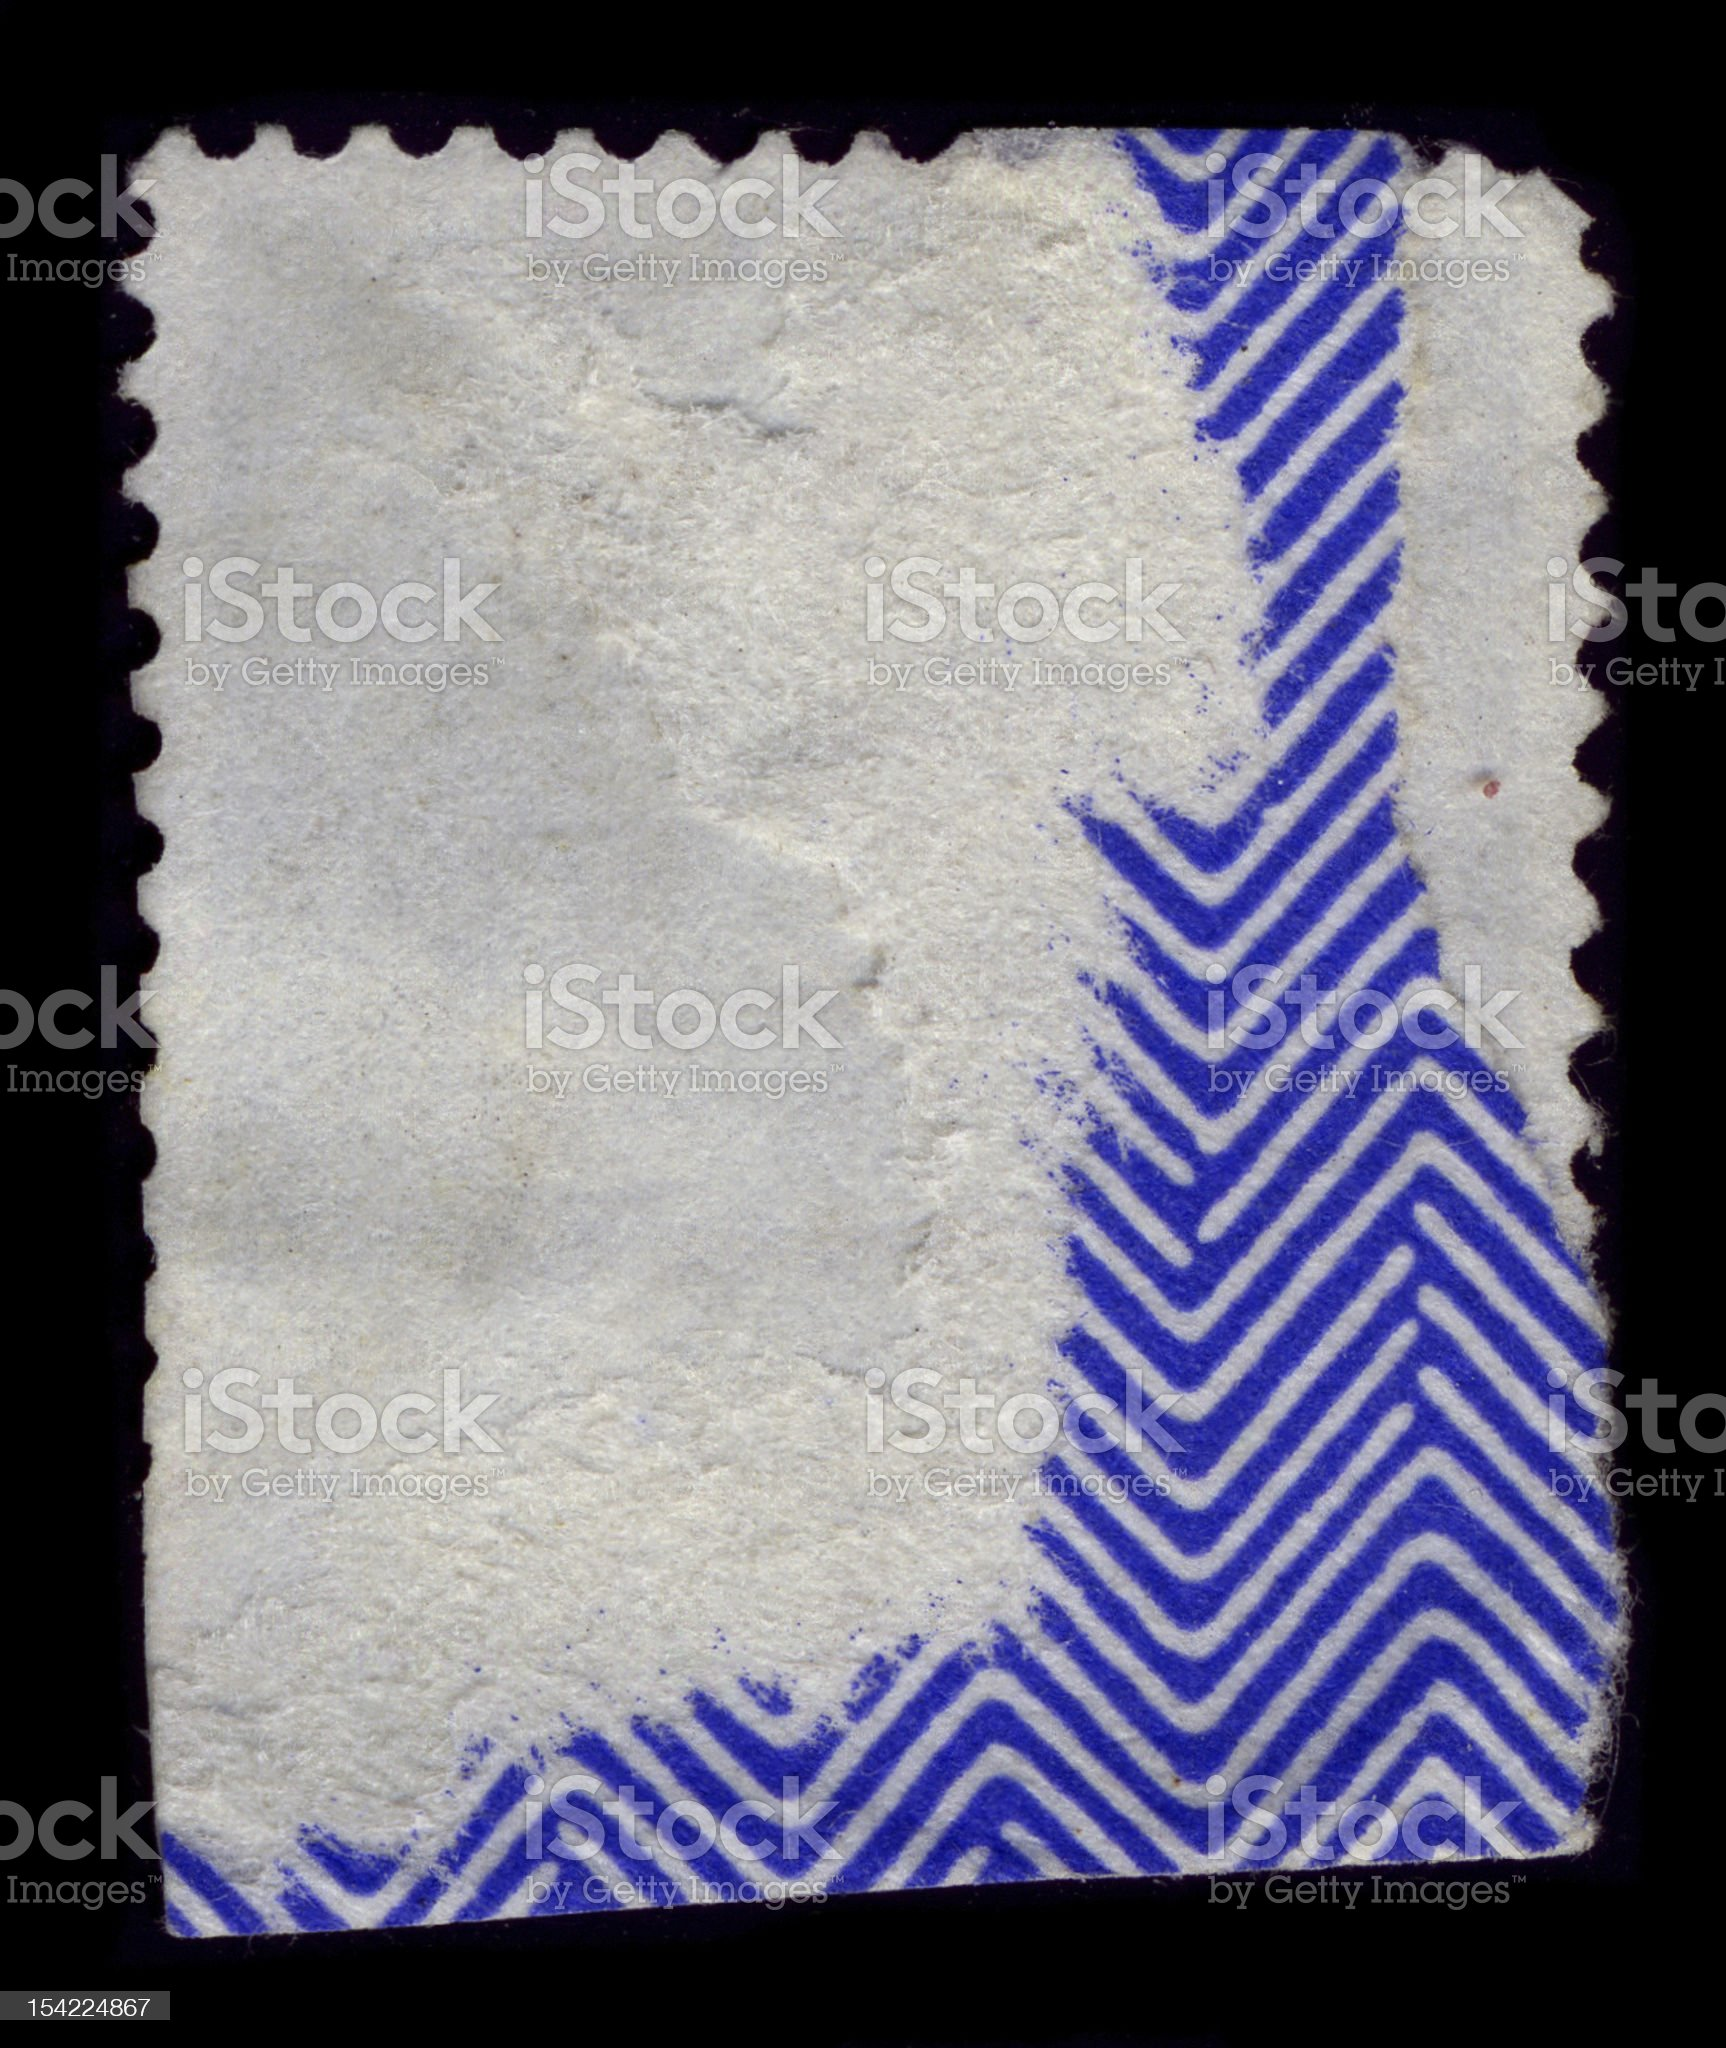 Background Postage stamp. royalty-free stock photo